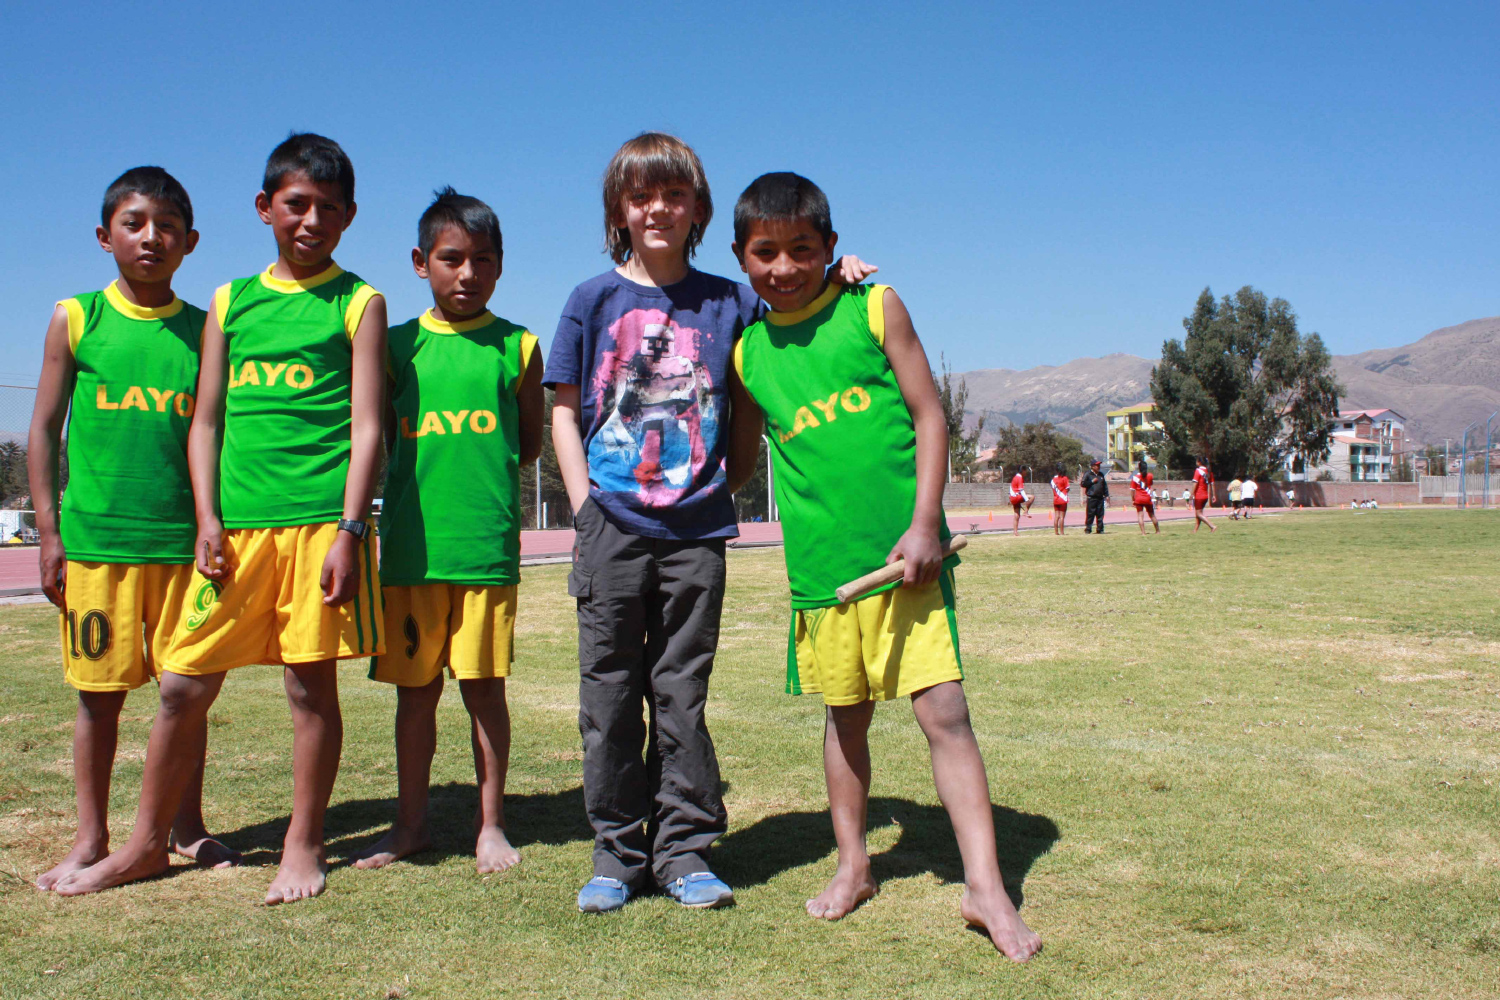 Luis and the relay team.